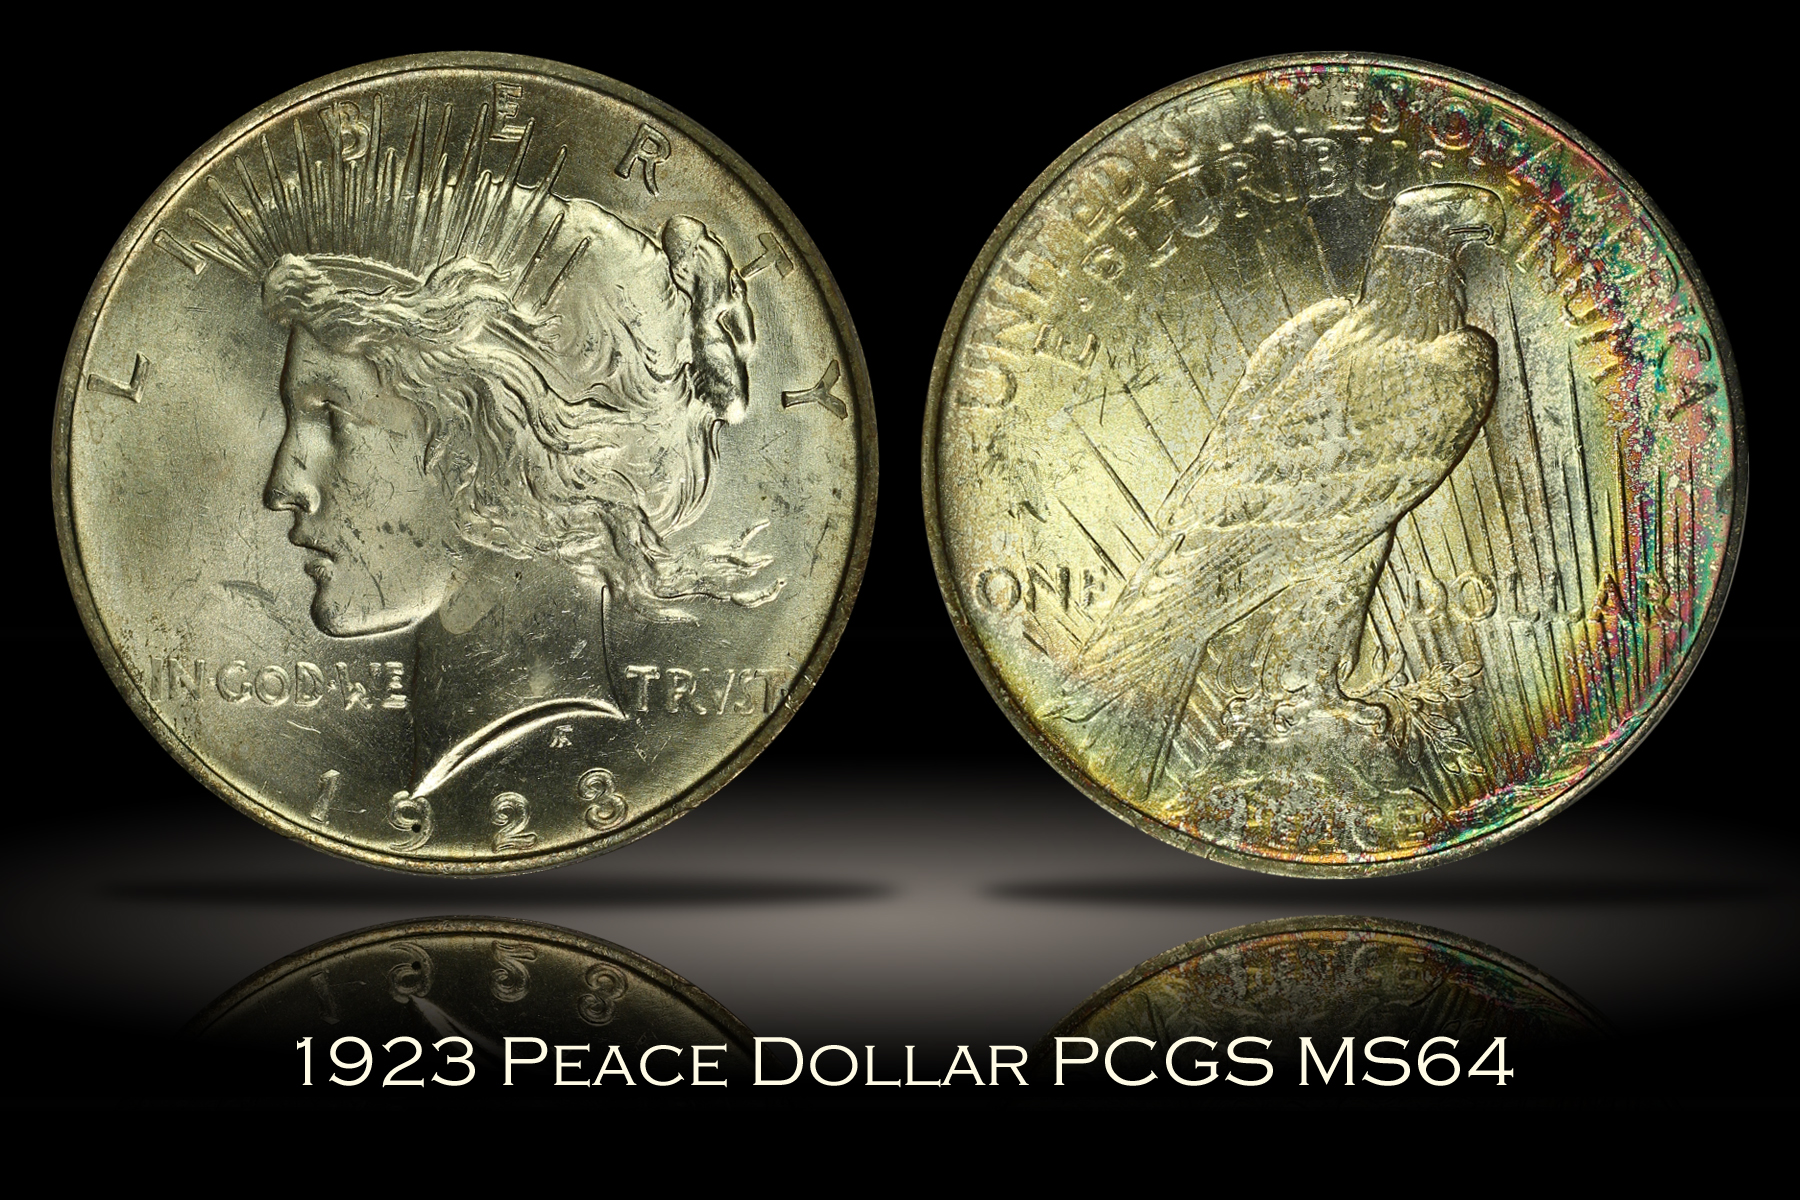 1923 Peace Dollar PCGS MS64